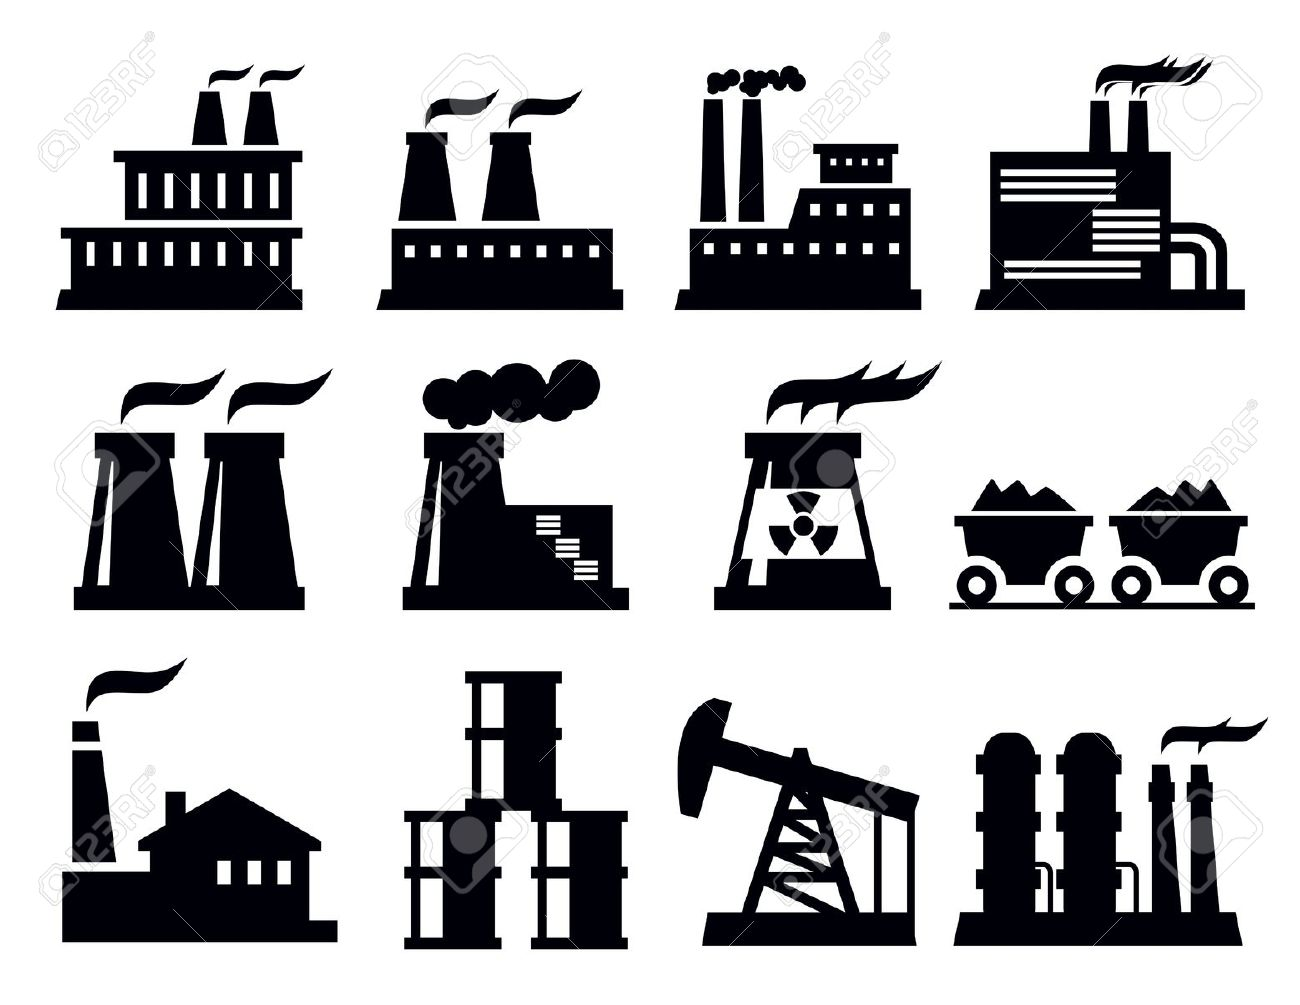 Building Factory Icon Royalty Free Cliparts, Vectors, And Stock.